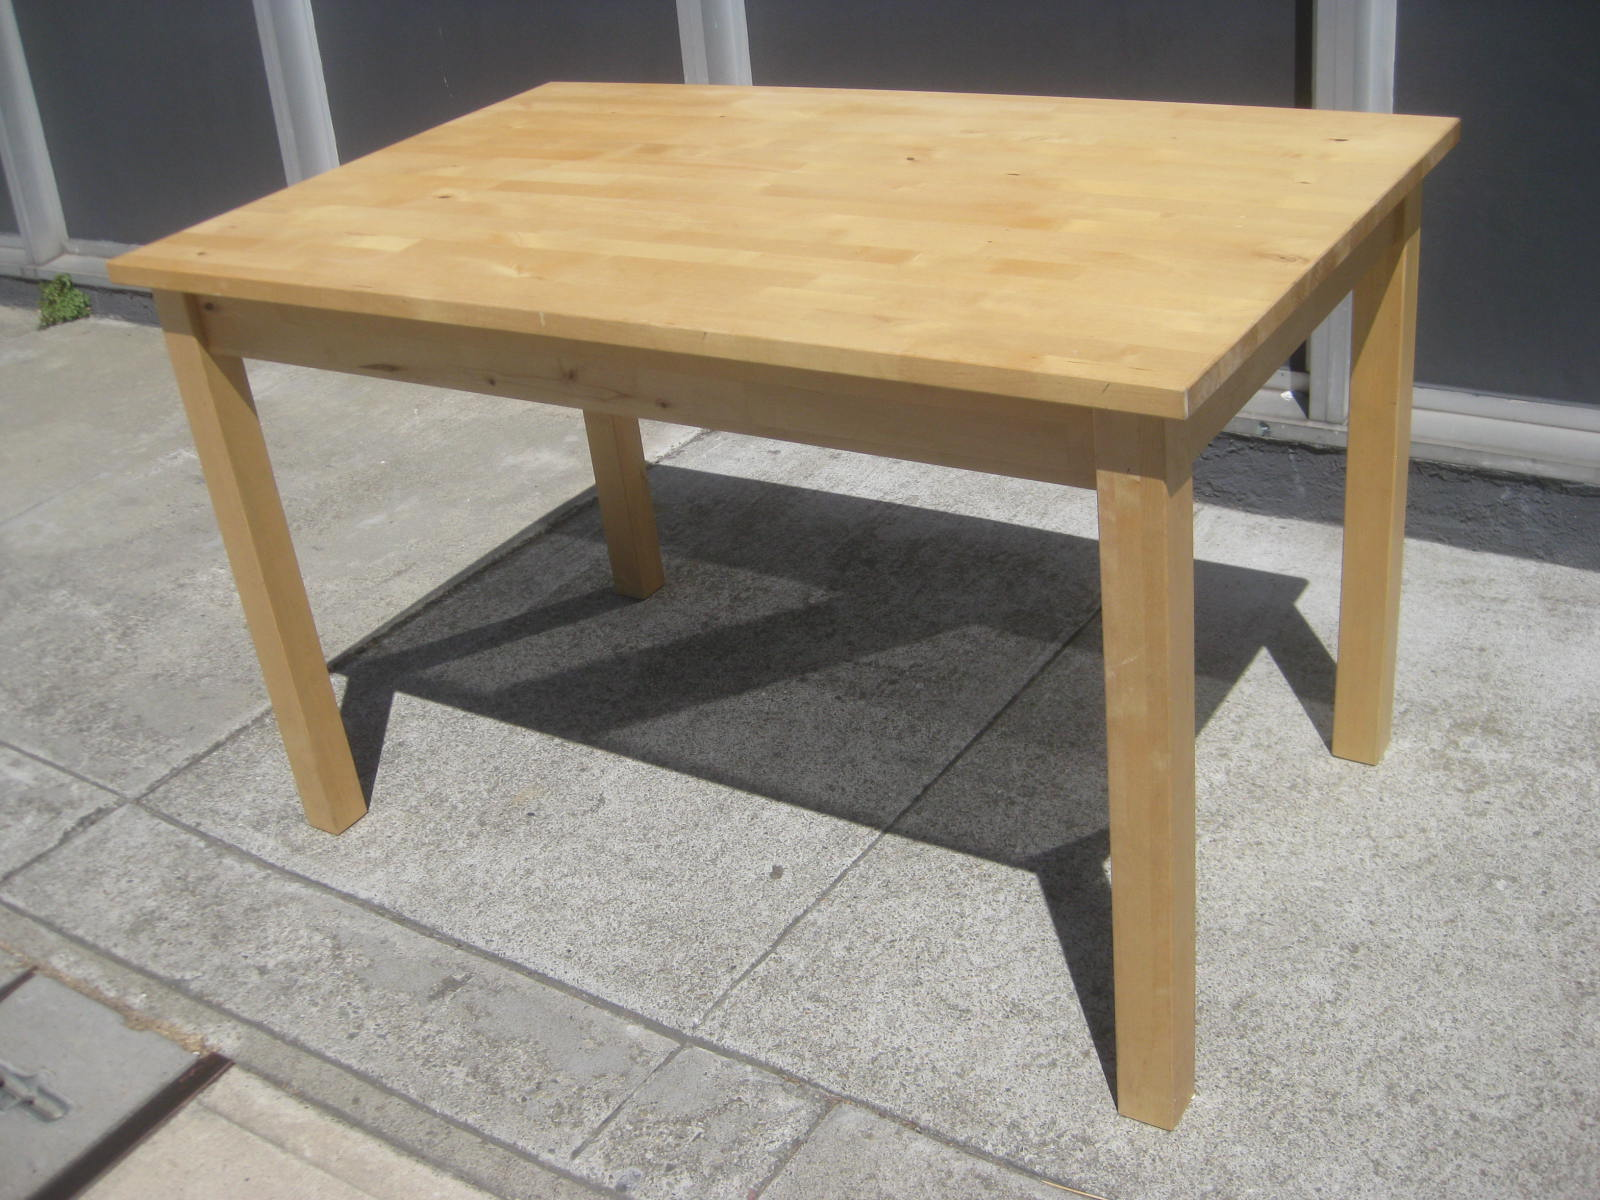 Uhuru Furniture Collectibles Sold Ikea Wooden Dining